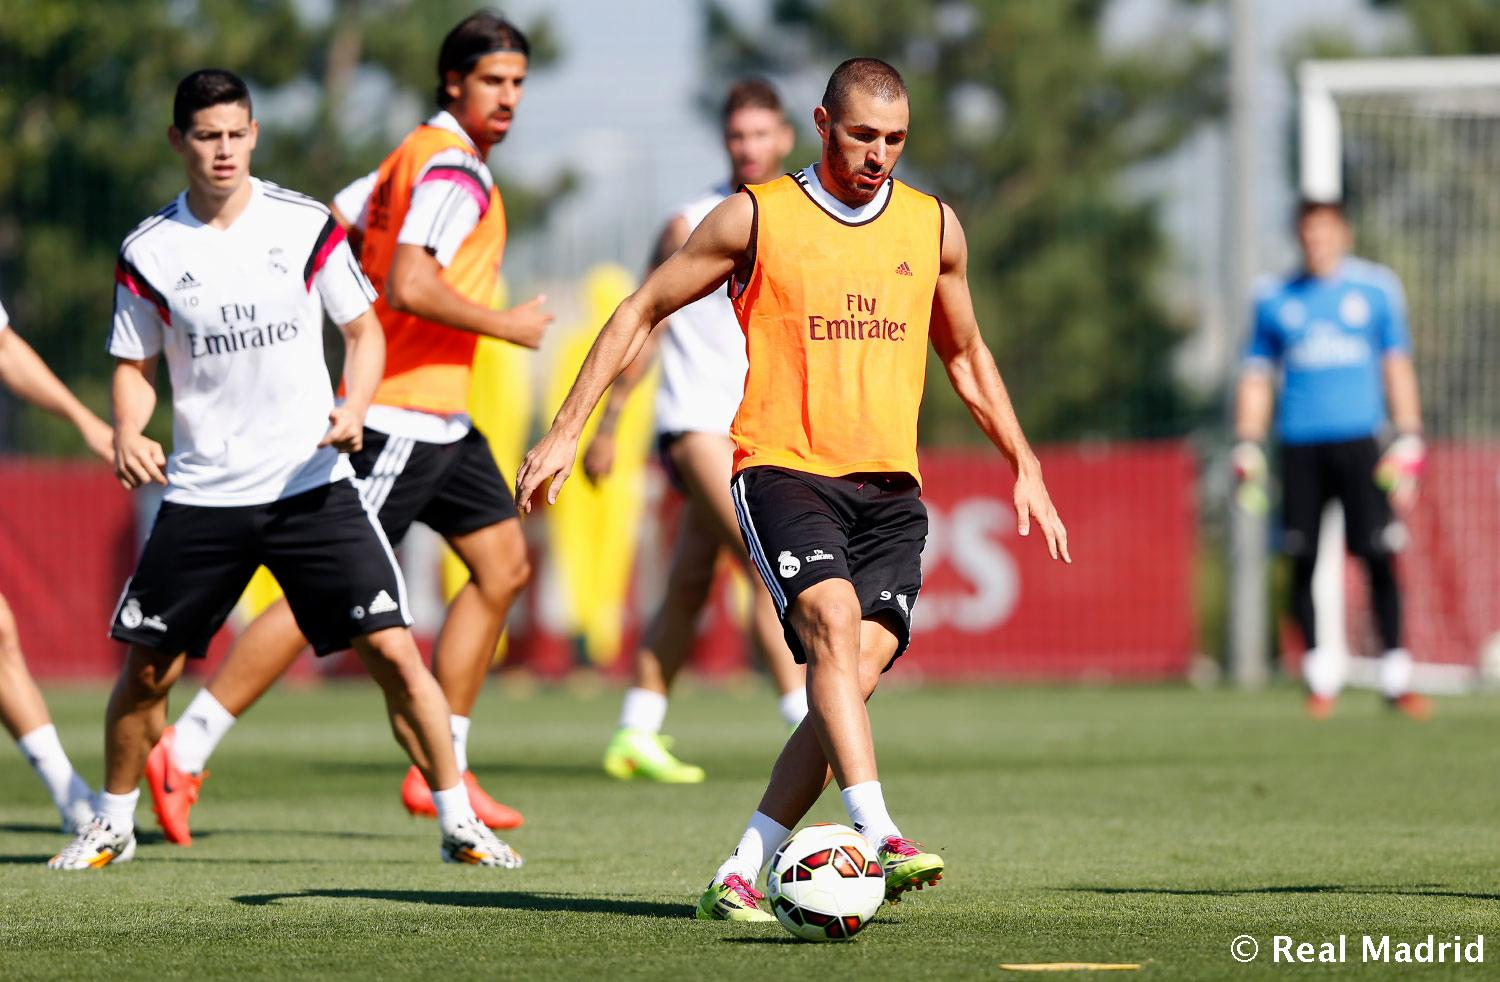 Real Madrid - Entrenamiento del Real Madrid - 24-08-2014